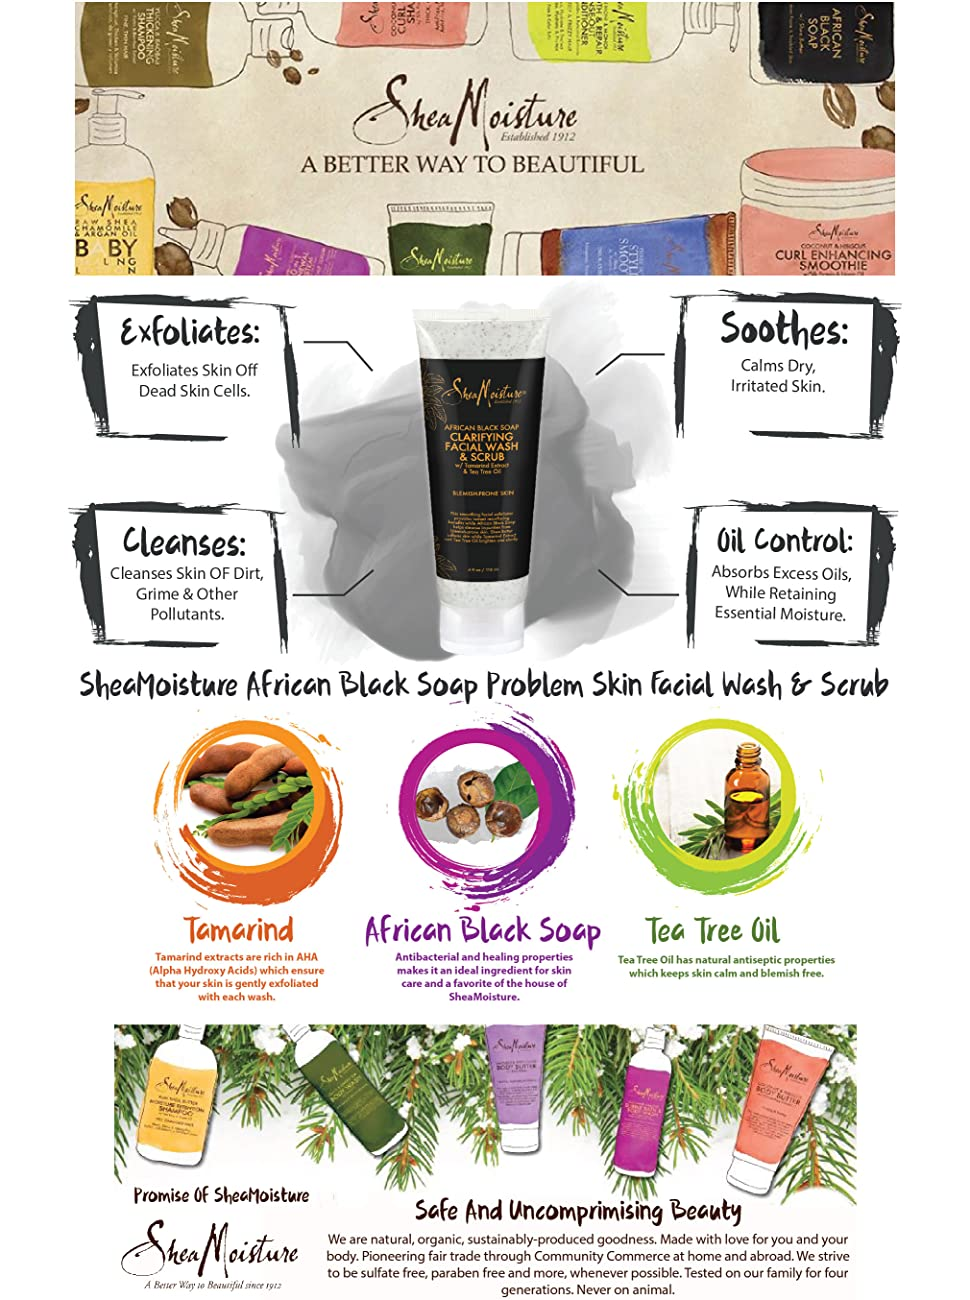 African Black Soap Facial Wash And Scrub by SheaMoisture #13